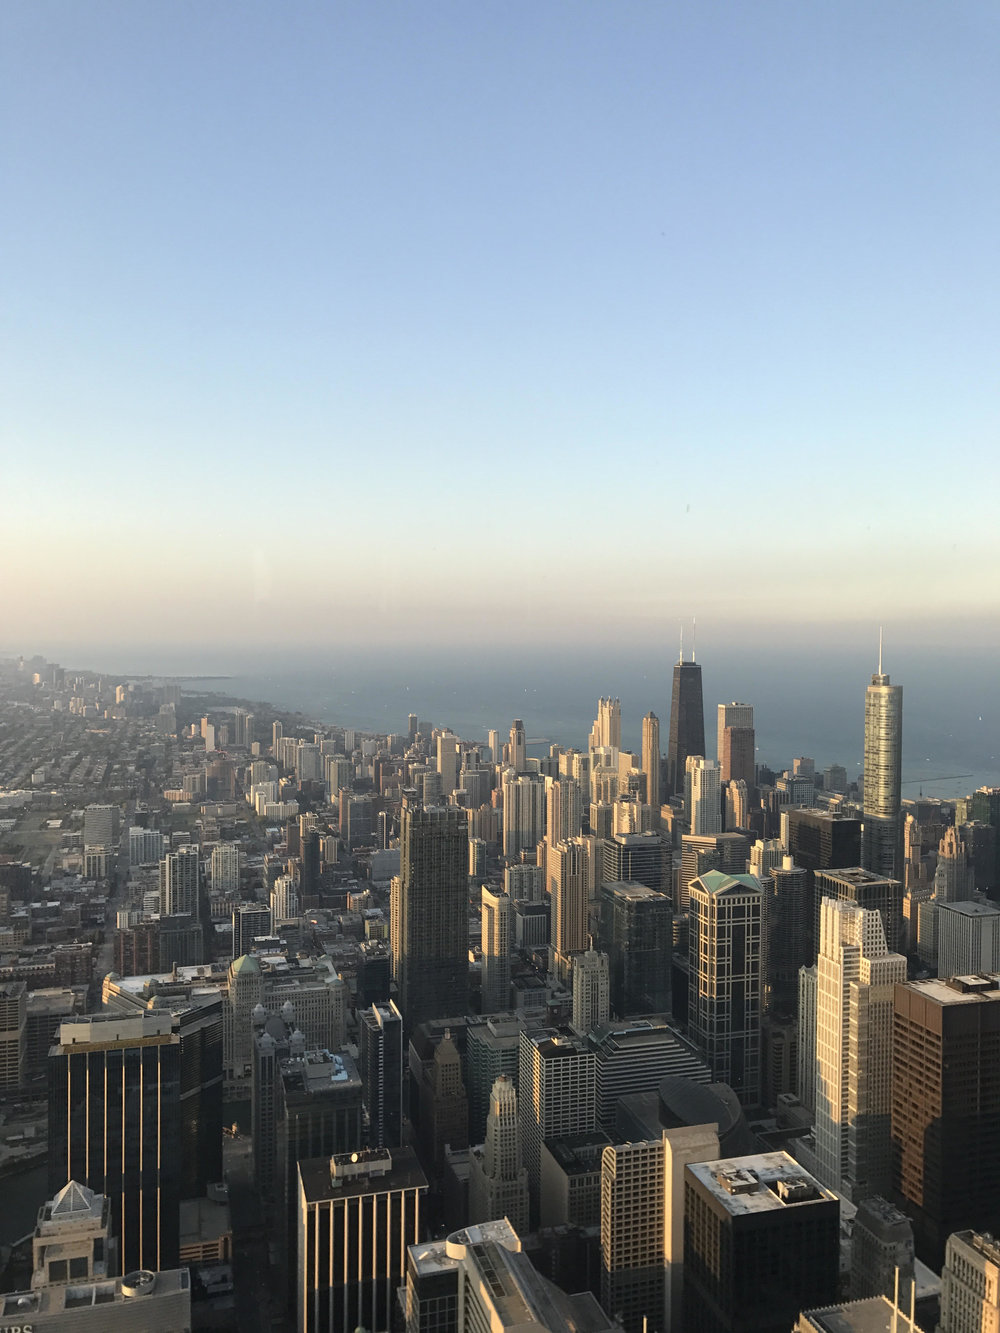 Highest Point in Chicago. Check. - Sears Tower (Willis Tower) standing at 1,729 feet tall. And you better bet that I walked out to the Skydeck ledge. Also check out the shadow of the building pointing into Lake Michigan in the picture below. This was a fantastic start to our anniversary weekend!